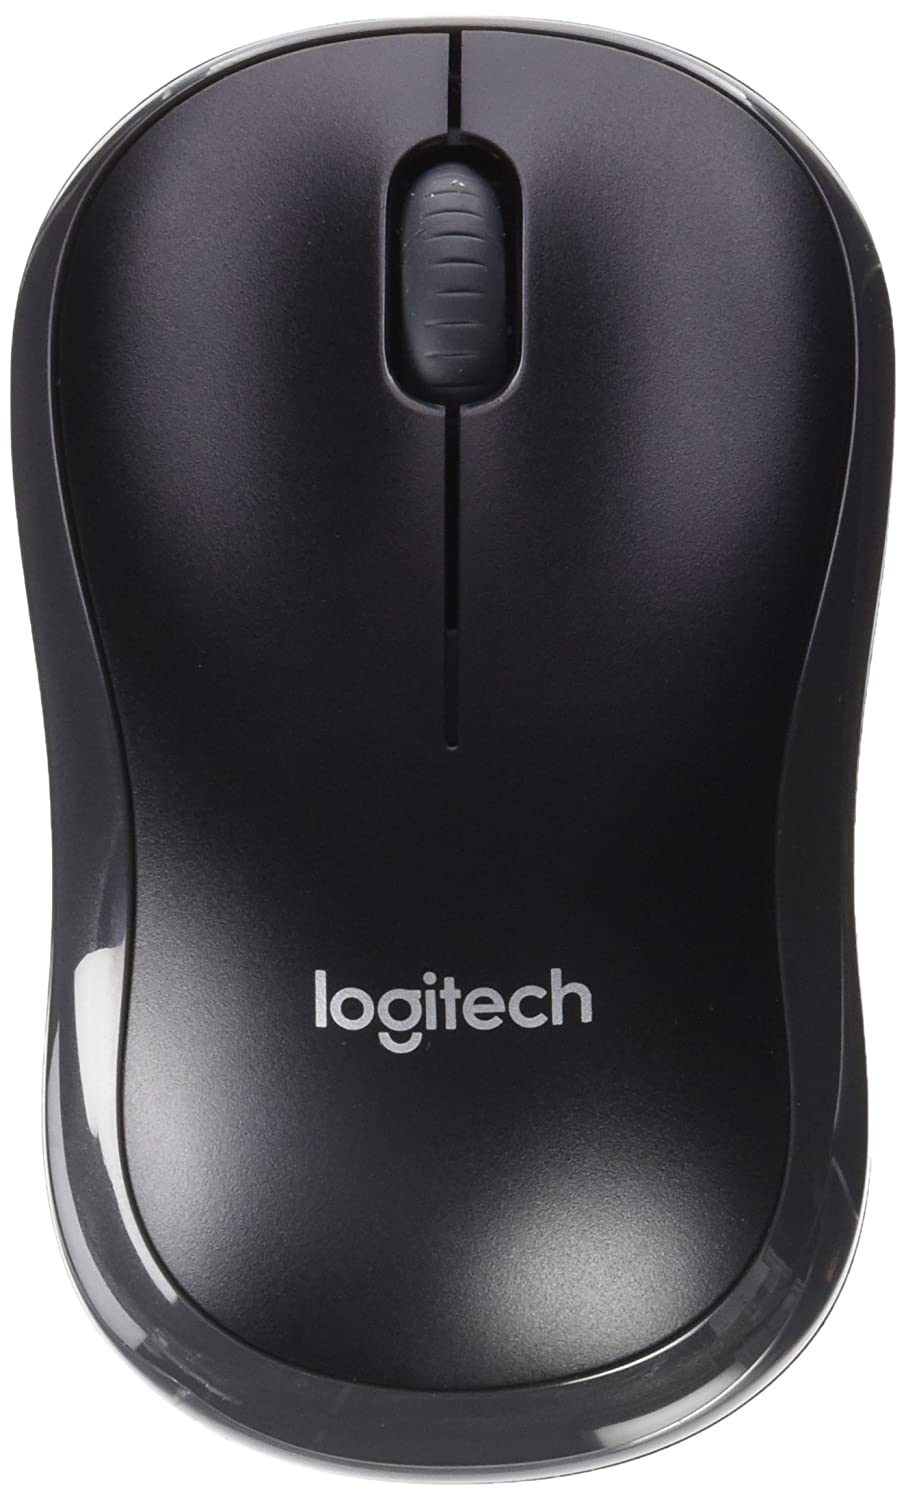 2aa0aa2373f Logitech M175 2.4 GHz Optical Wireless Mouse: Amazon.co.uk: Computers &  Accessories